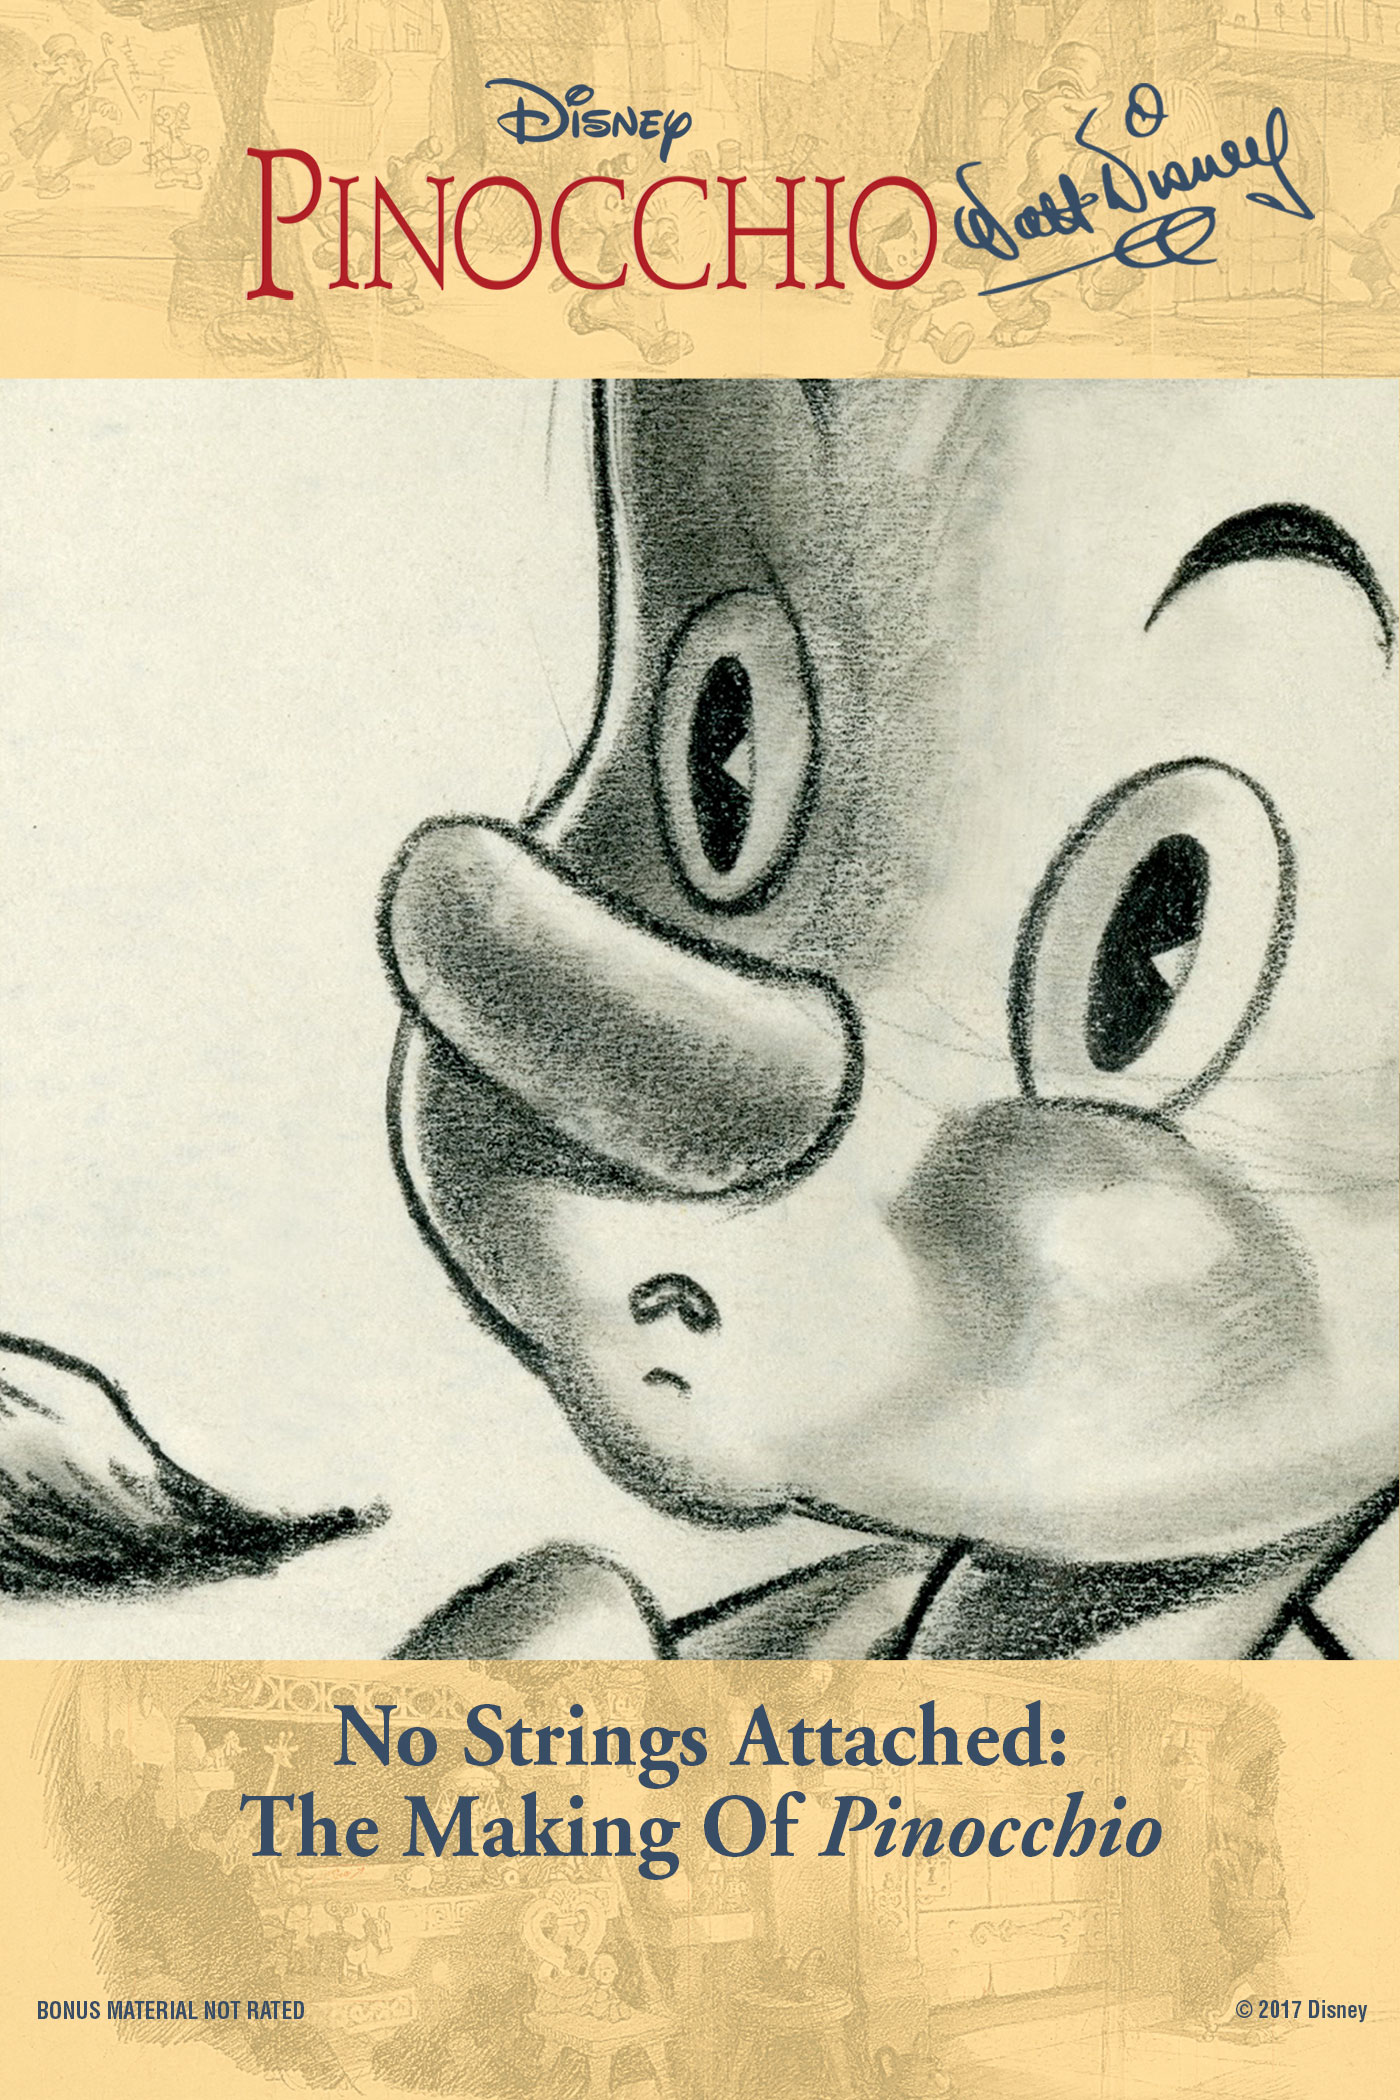 No Strings Attached: The Making of Pinocchio